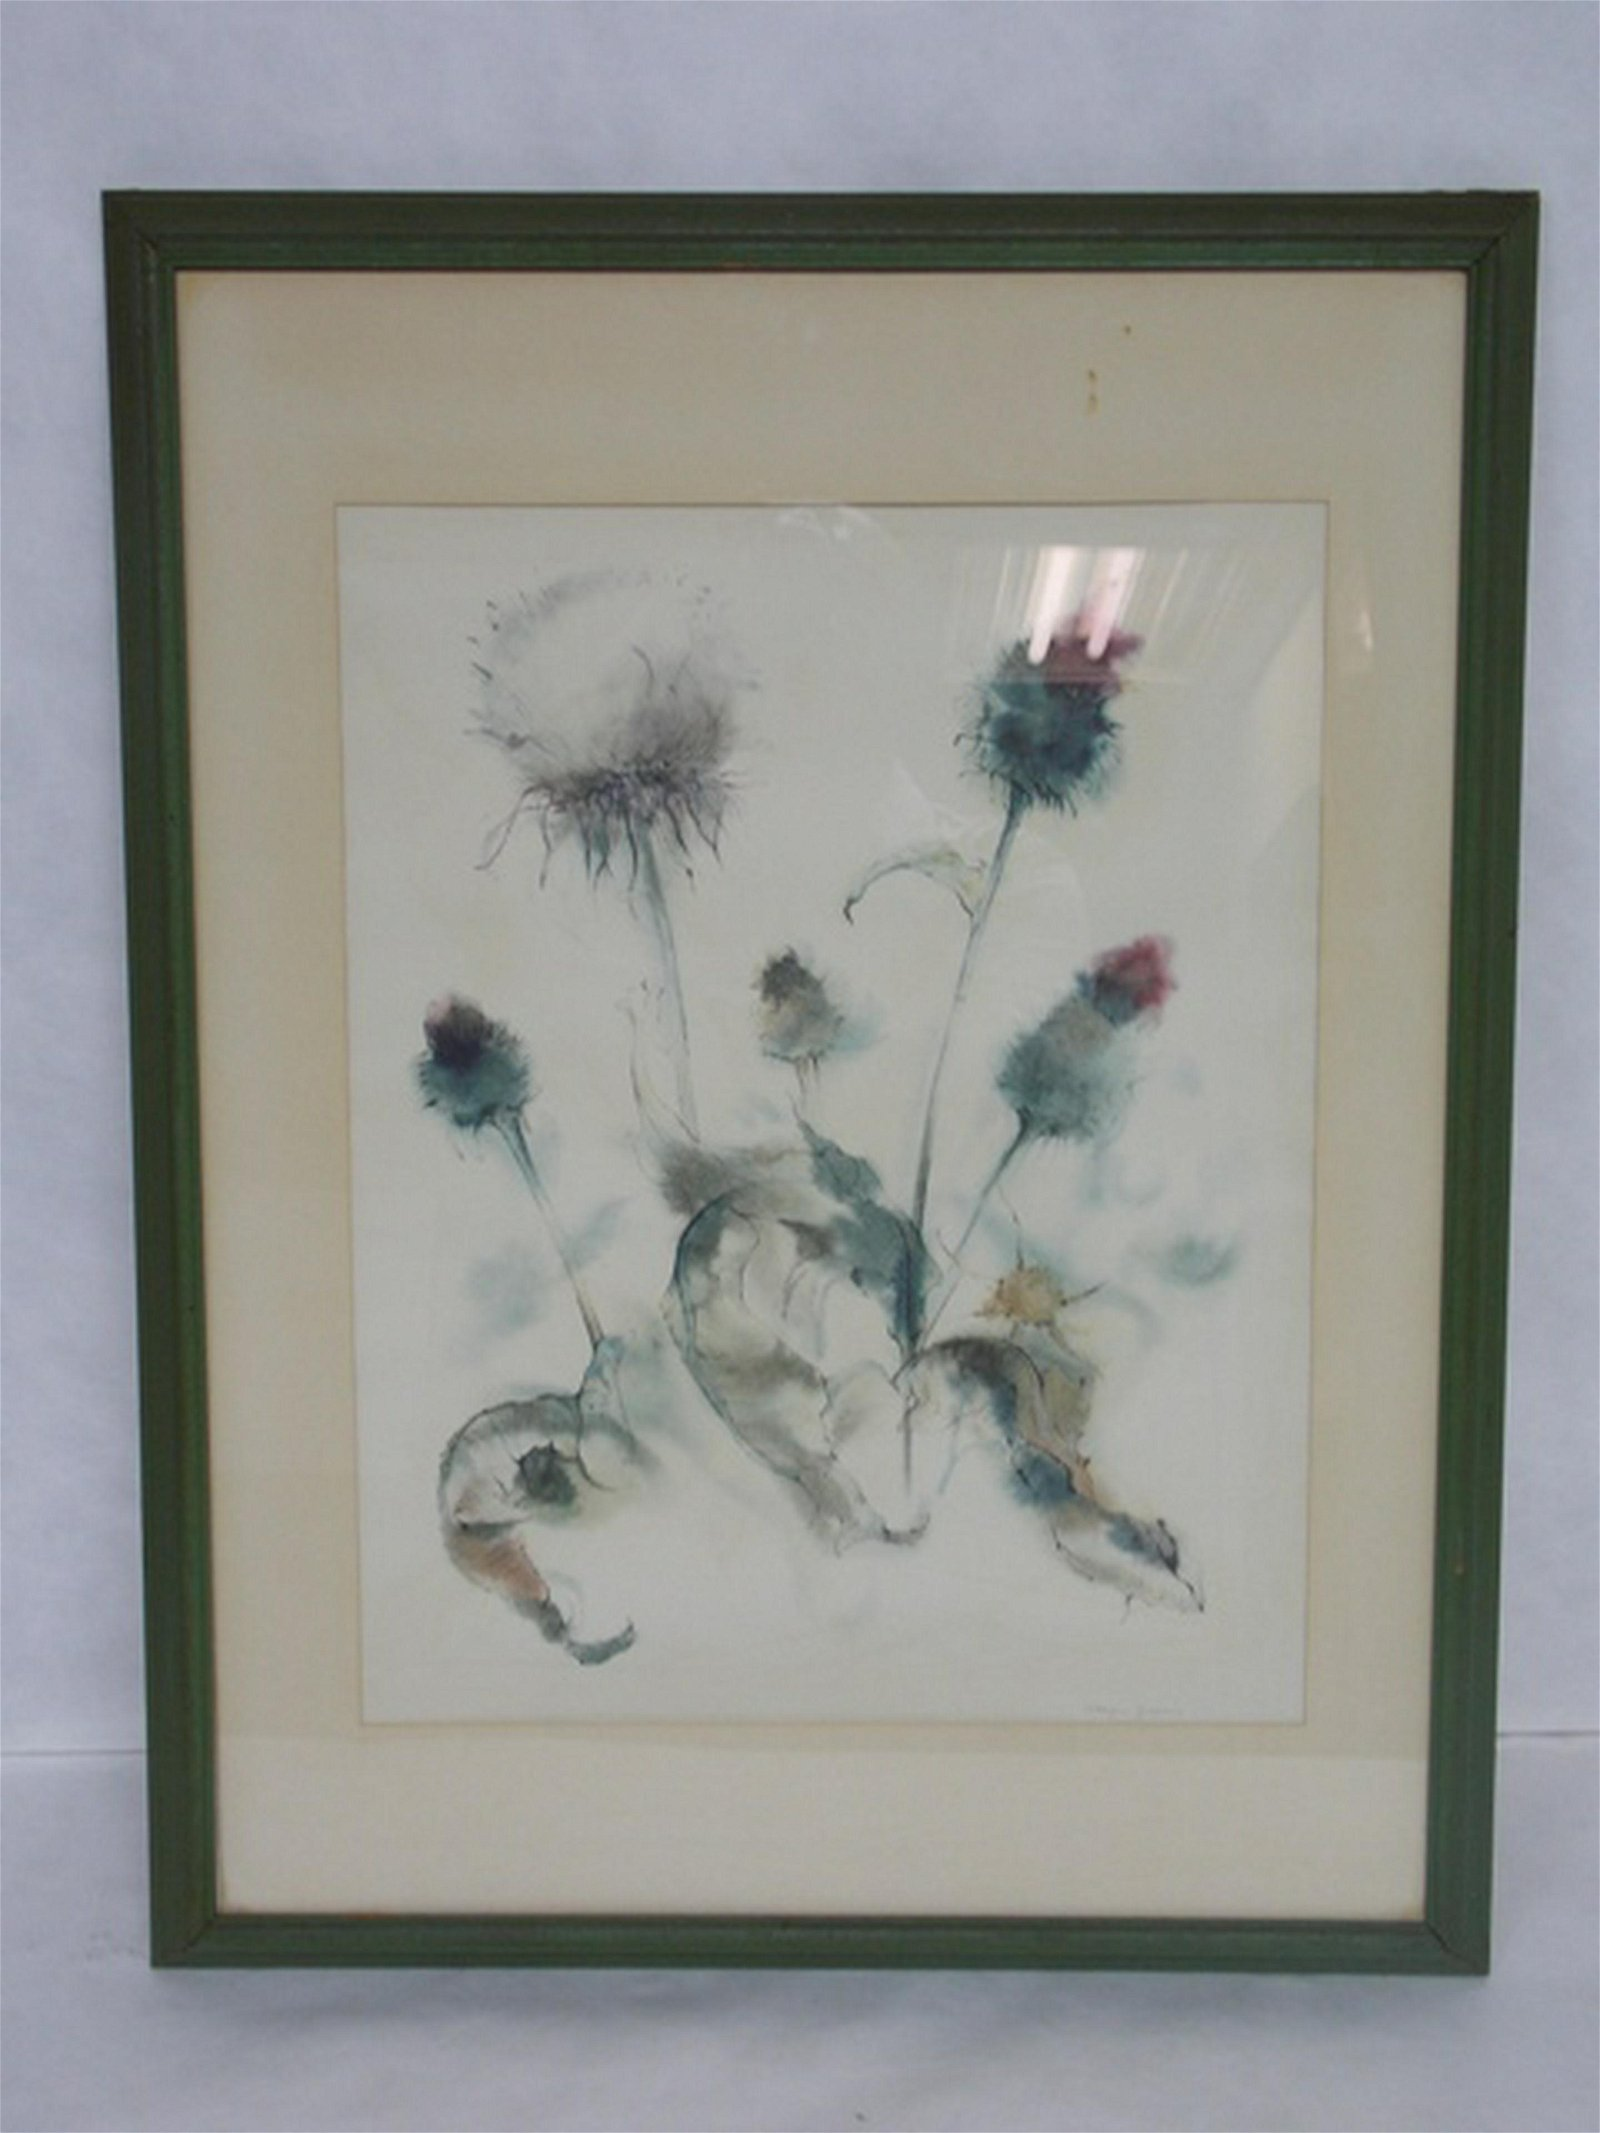 ANTIQUE WATERCOLOR FLORAL PAINTING ARTIST SIGNED